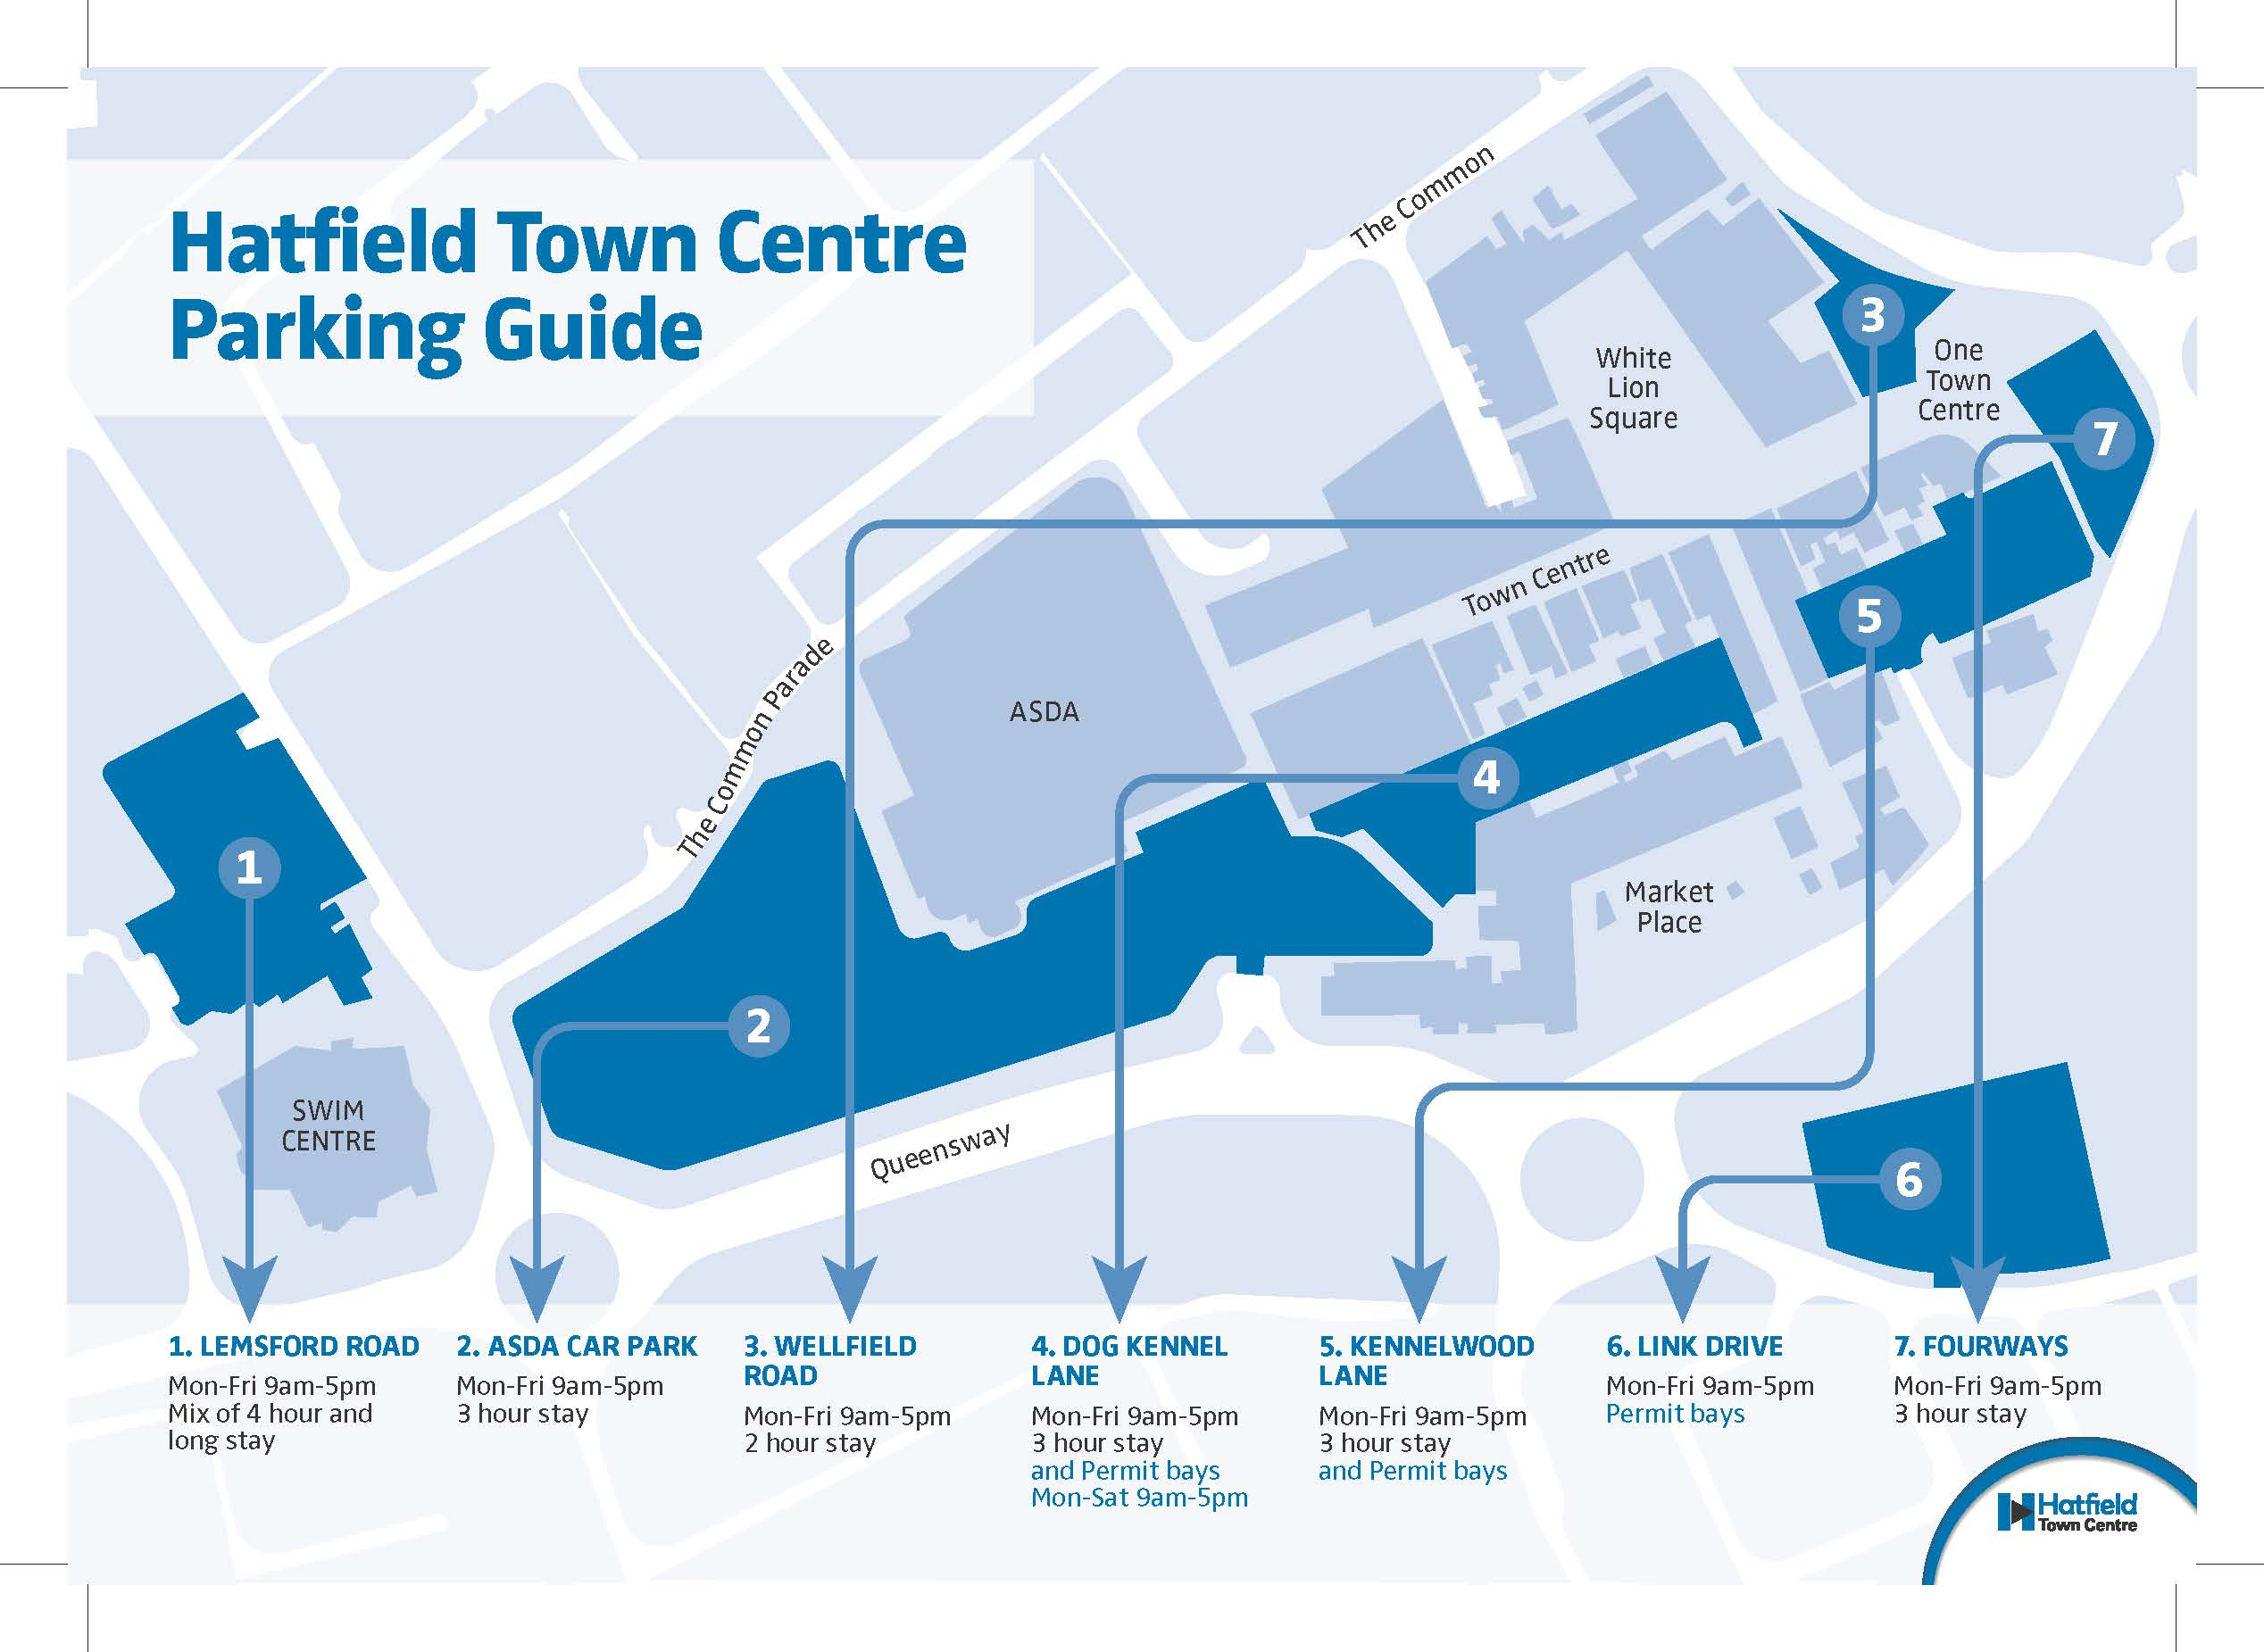 A guide to parking in Hatfield Town Centre